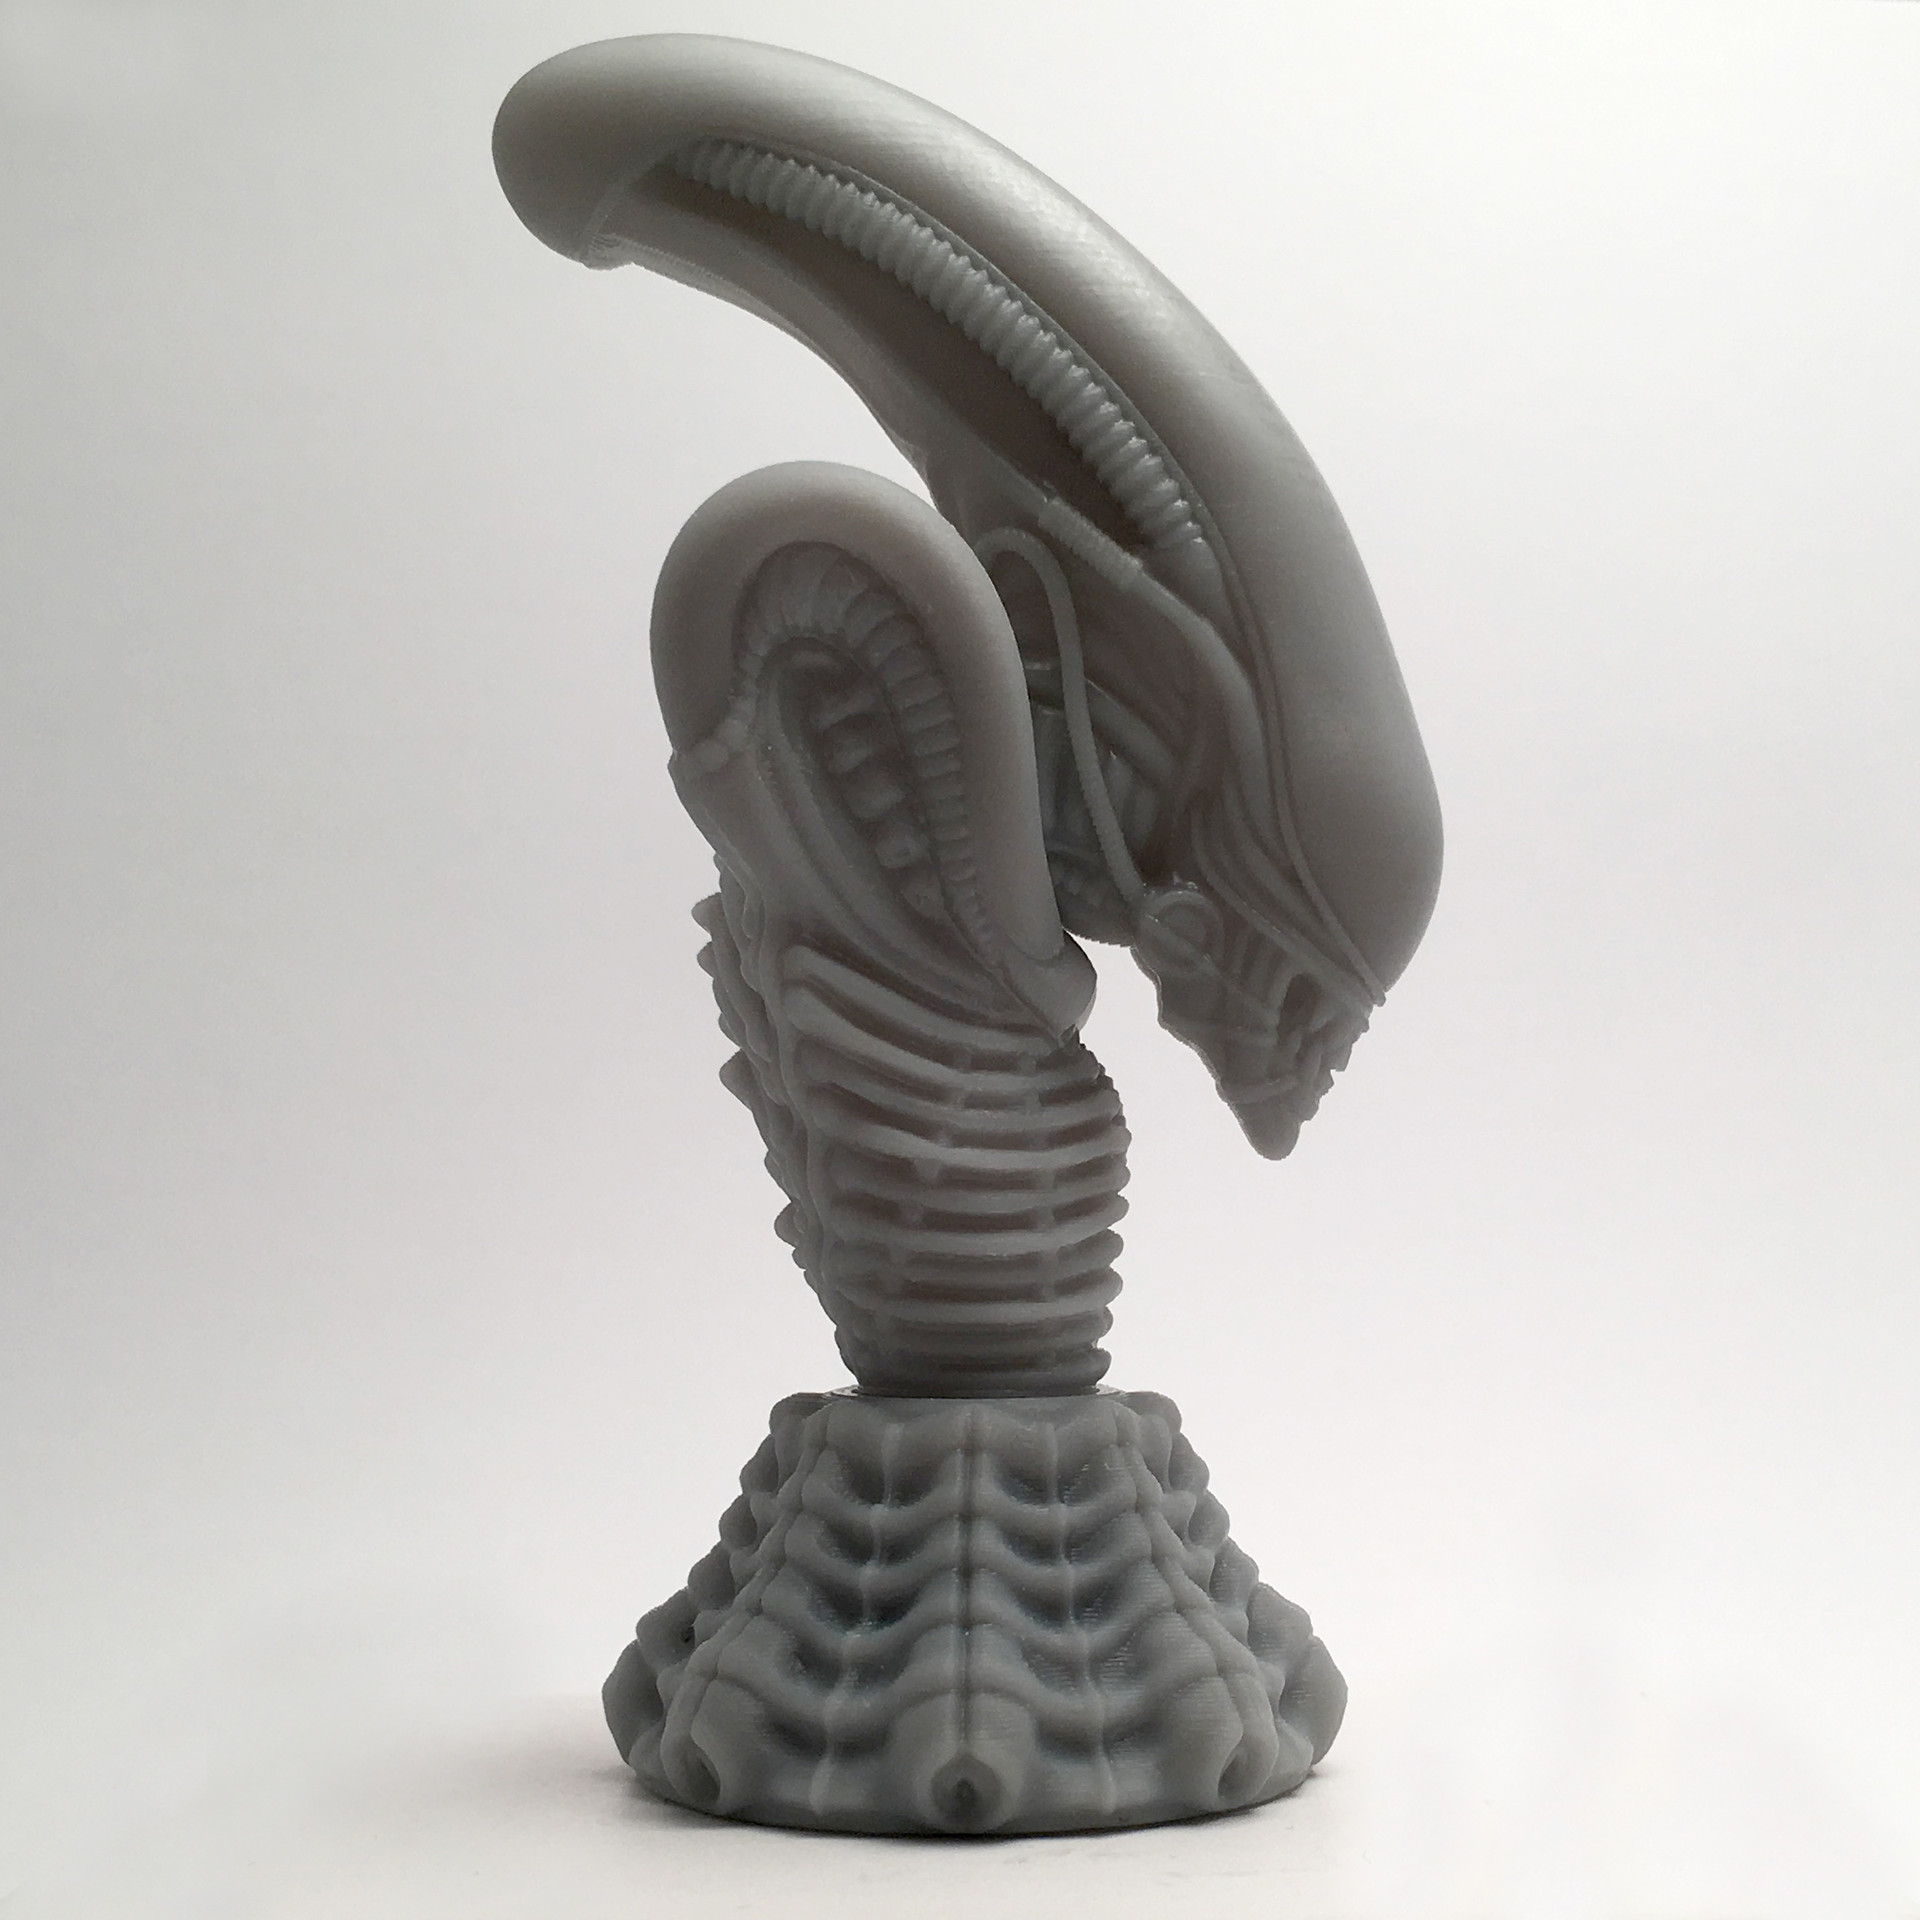 Ken calvert alien bishop 2